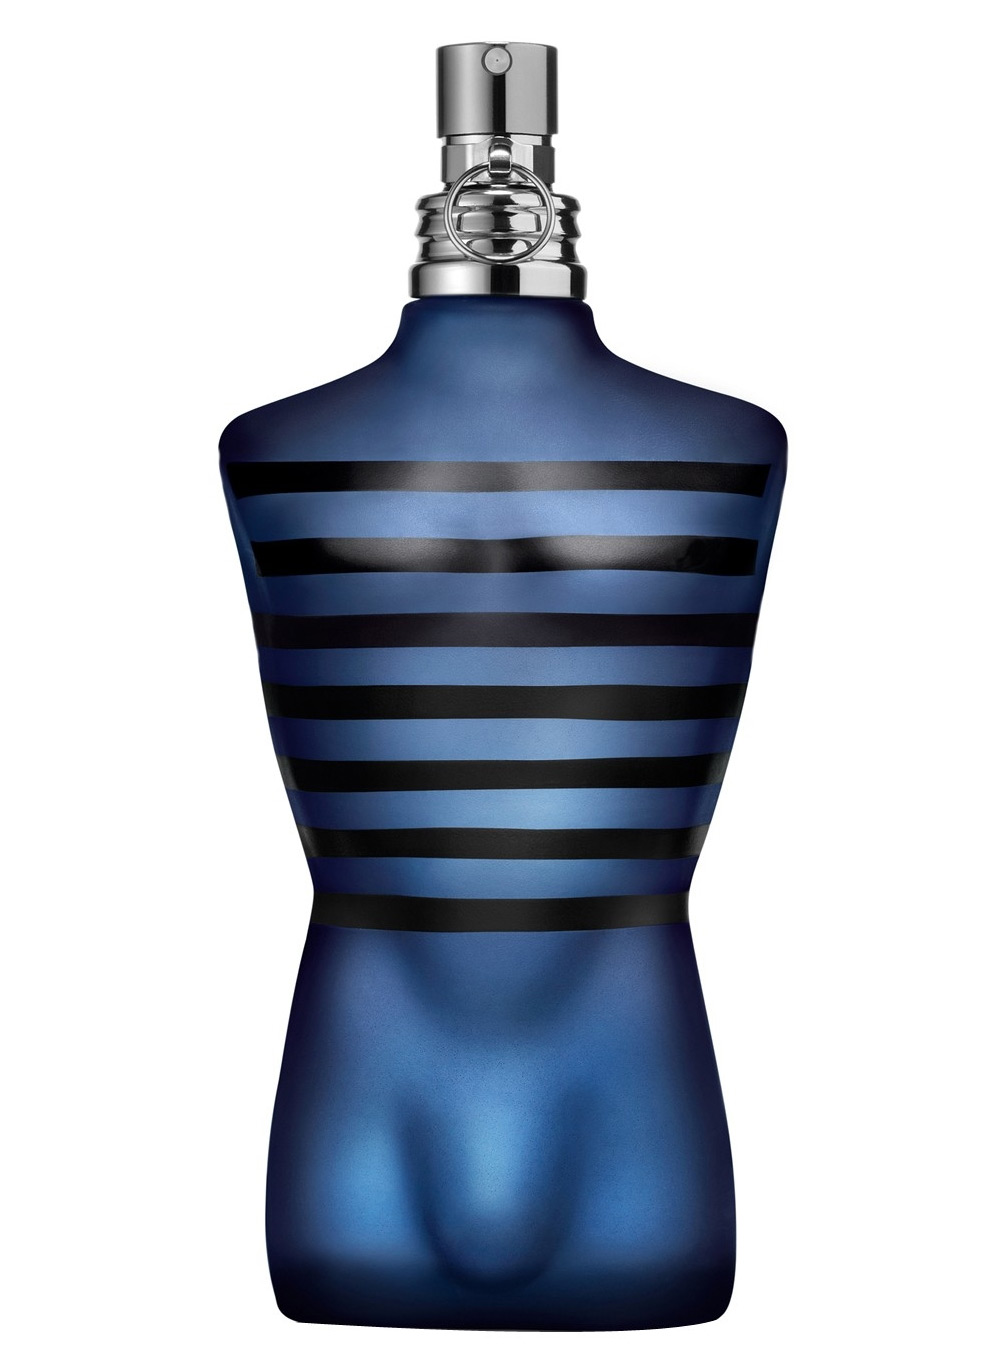 ultra male jean paul gaultier cologne a new fragrance. Black Bedroom Furniture Sets. Home Design Ideas